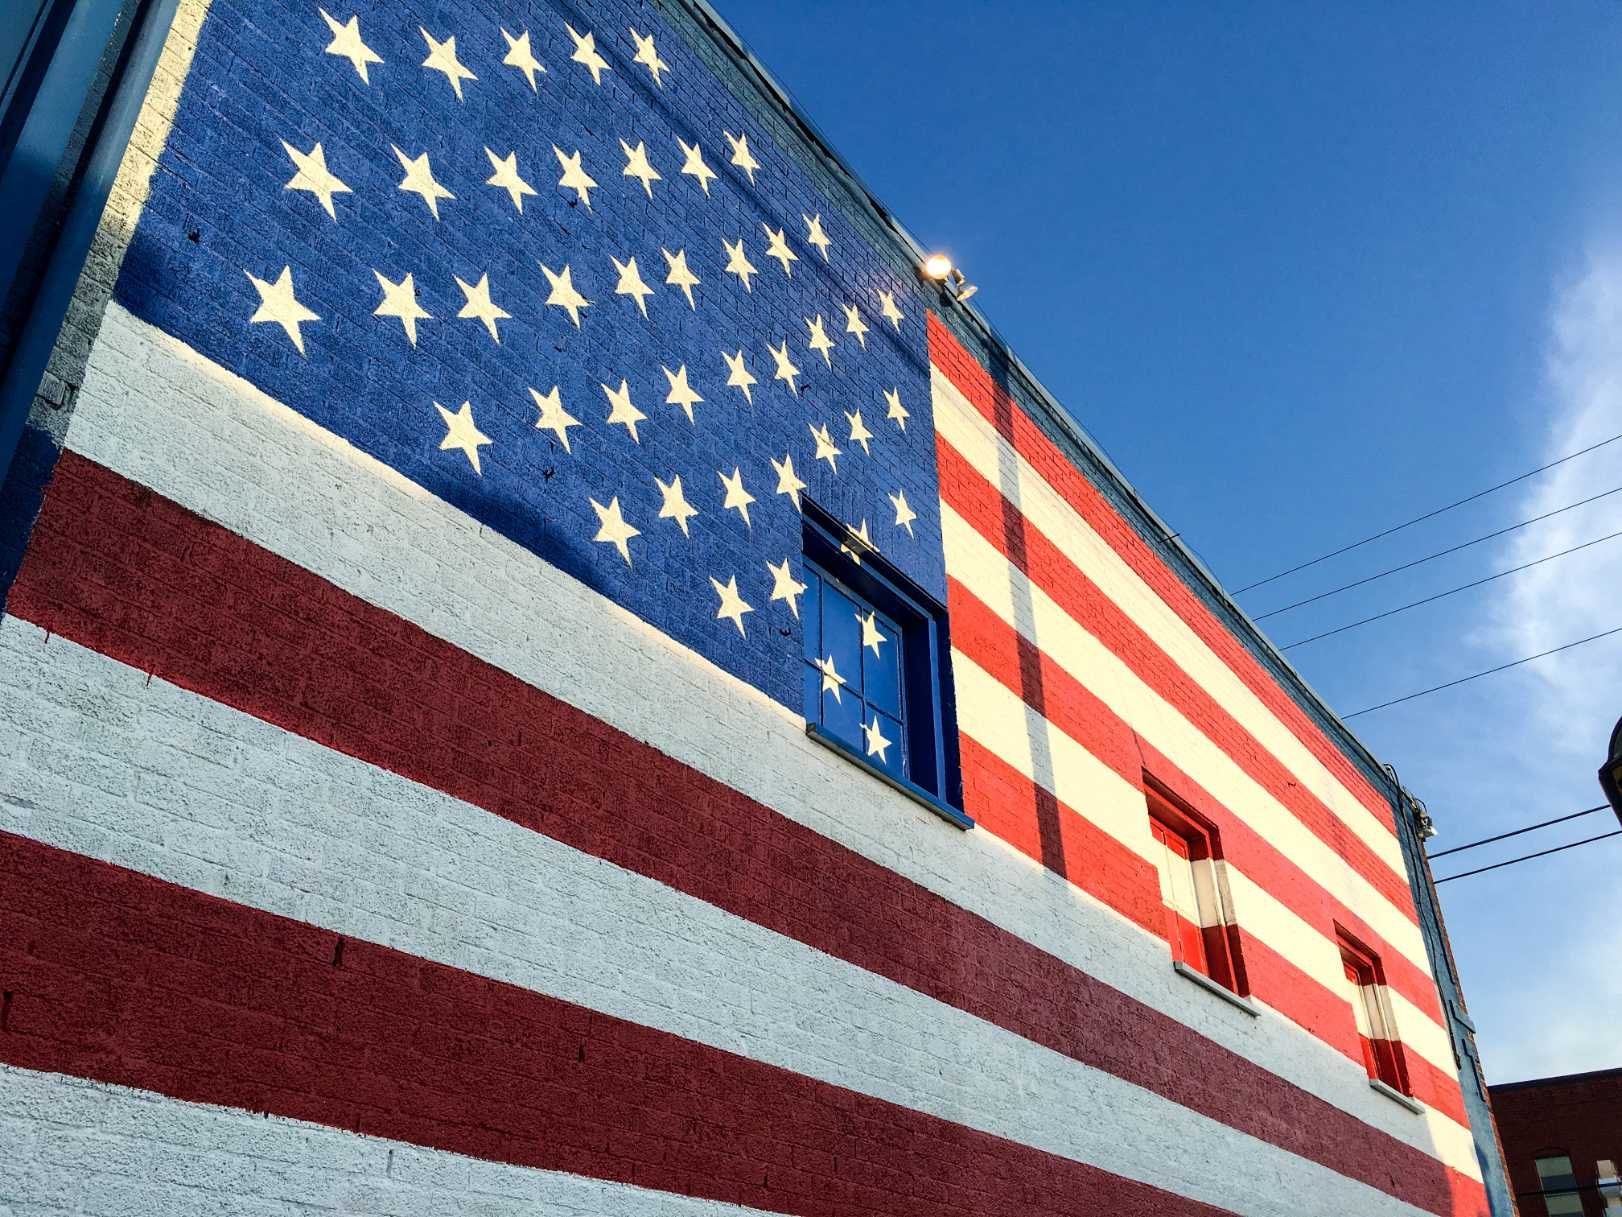 Honoring the red, white and blue.